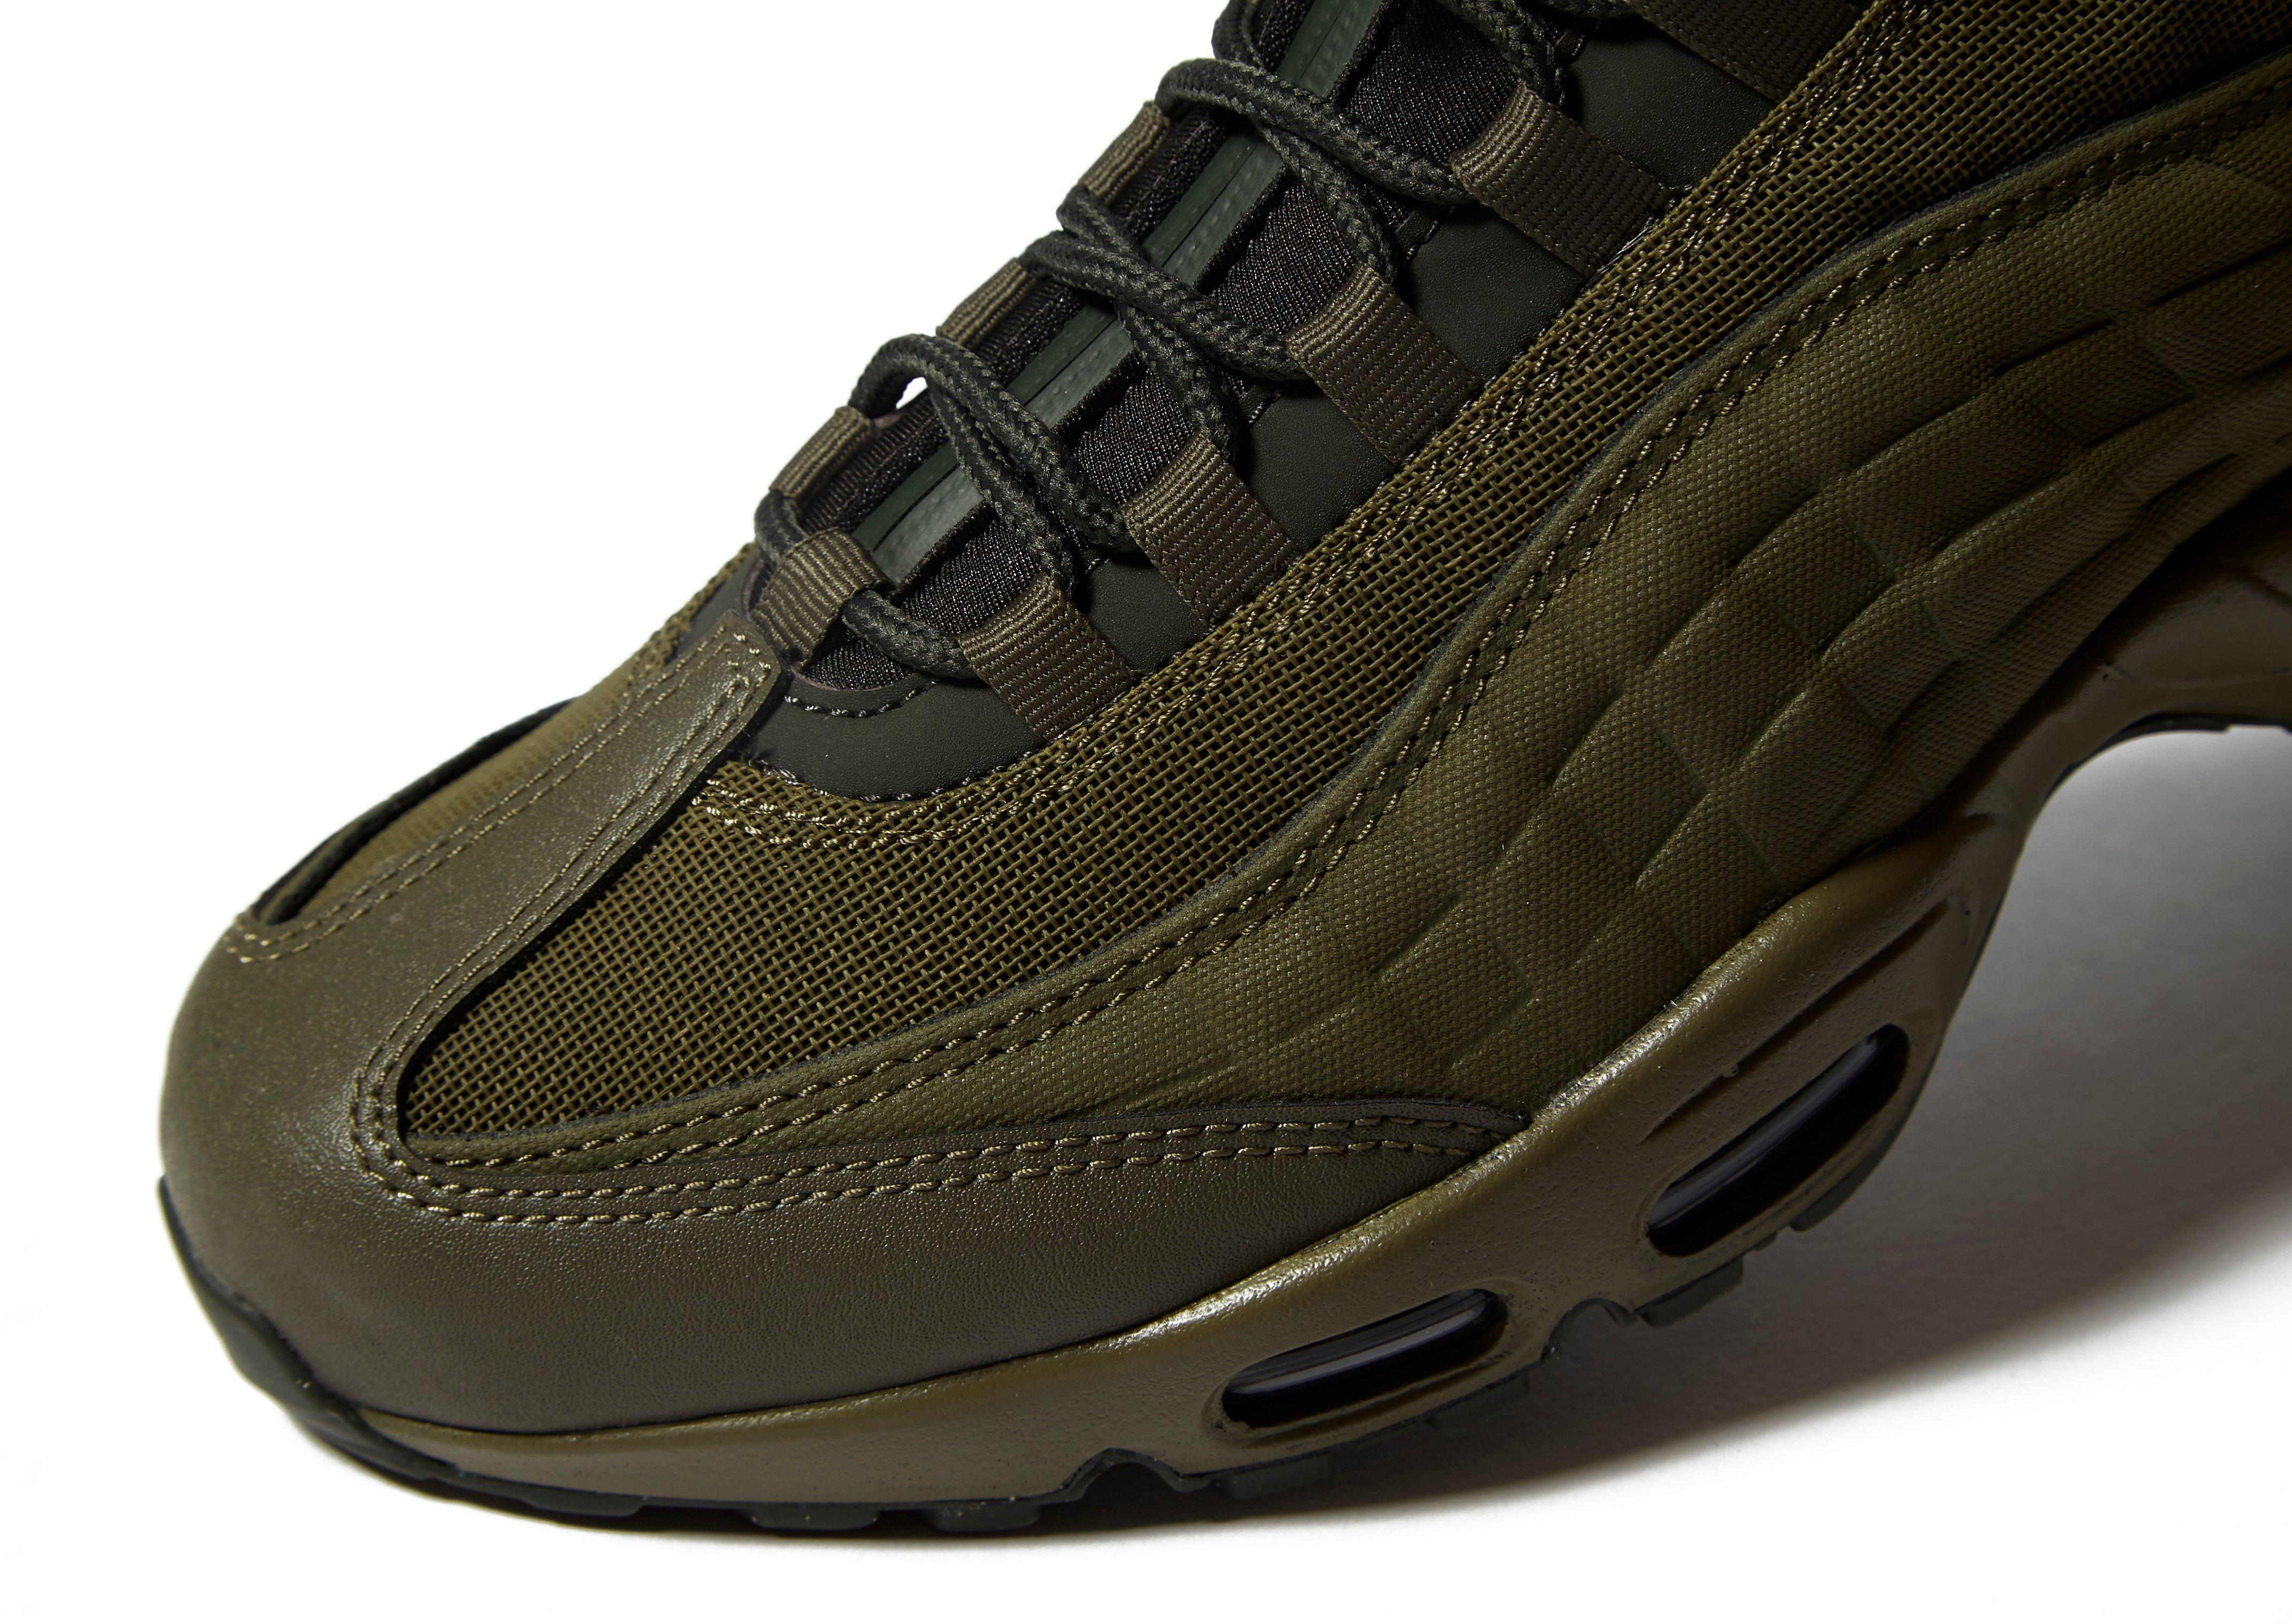 3e04c8c5a86 ... basketball shoes cffc0 98e77  get nike air max 95 sneakerboot in green  for men lyst 96cb8 cc4a7